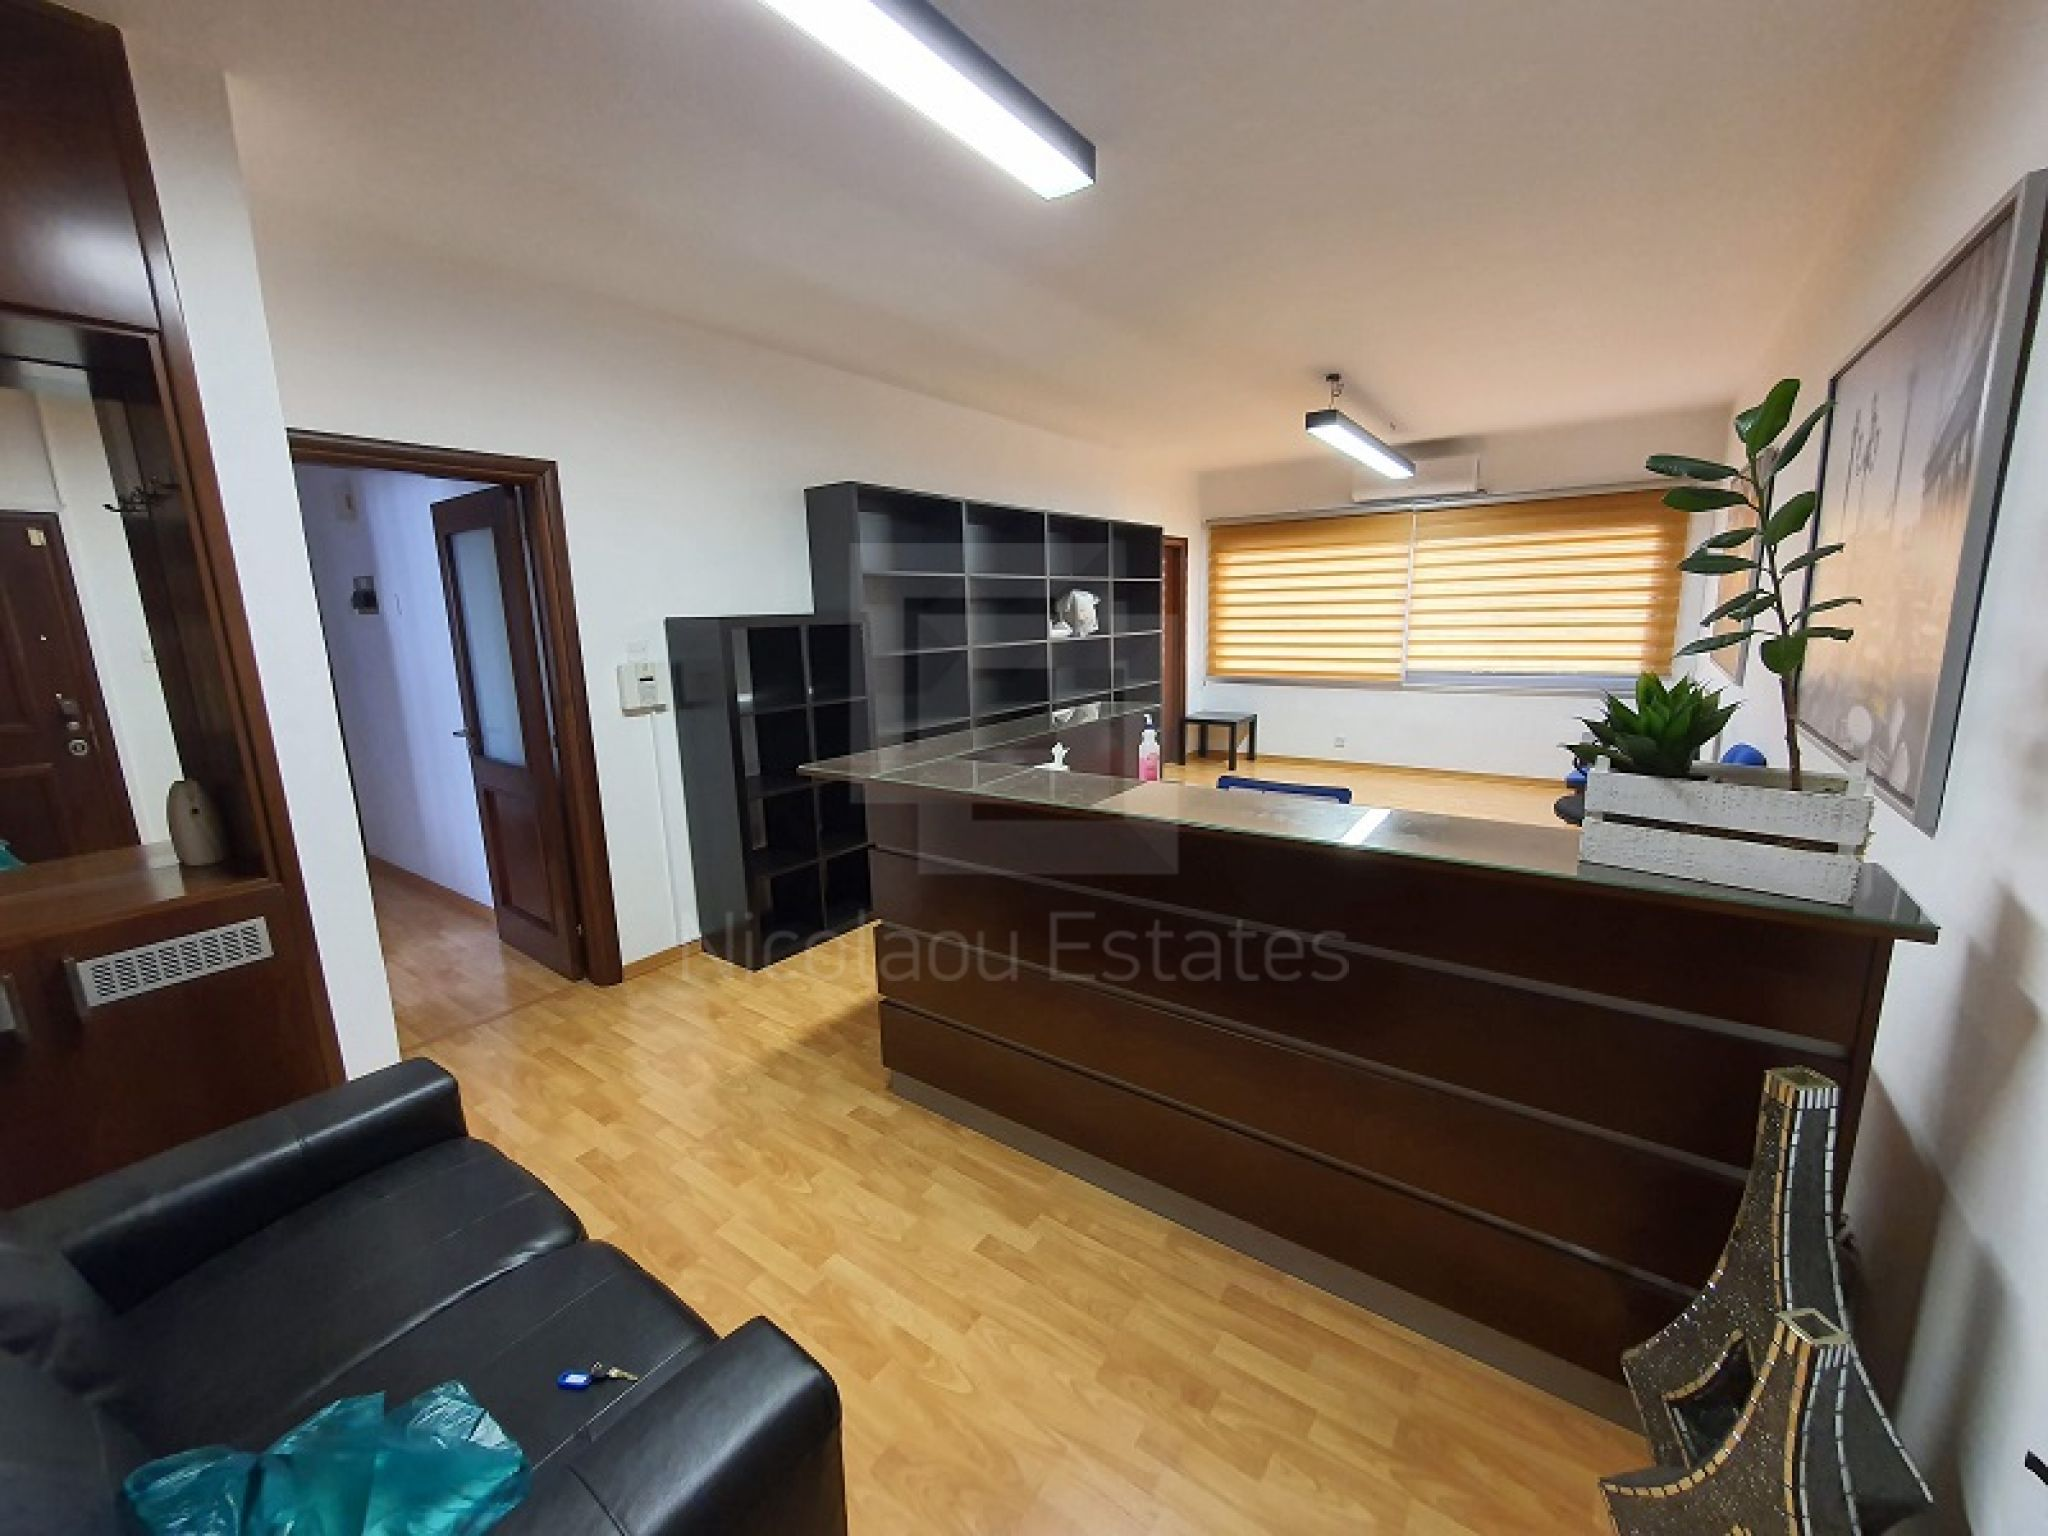 Furnished office for rent in Limassol center in a walking distance to District Courts